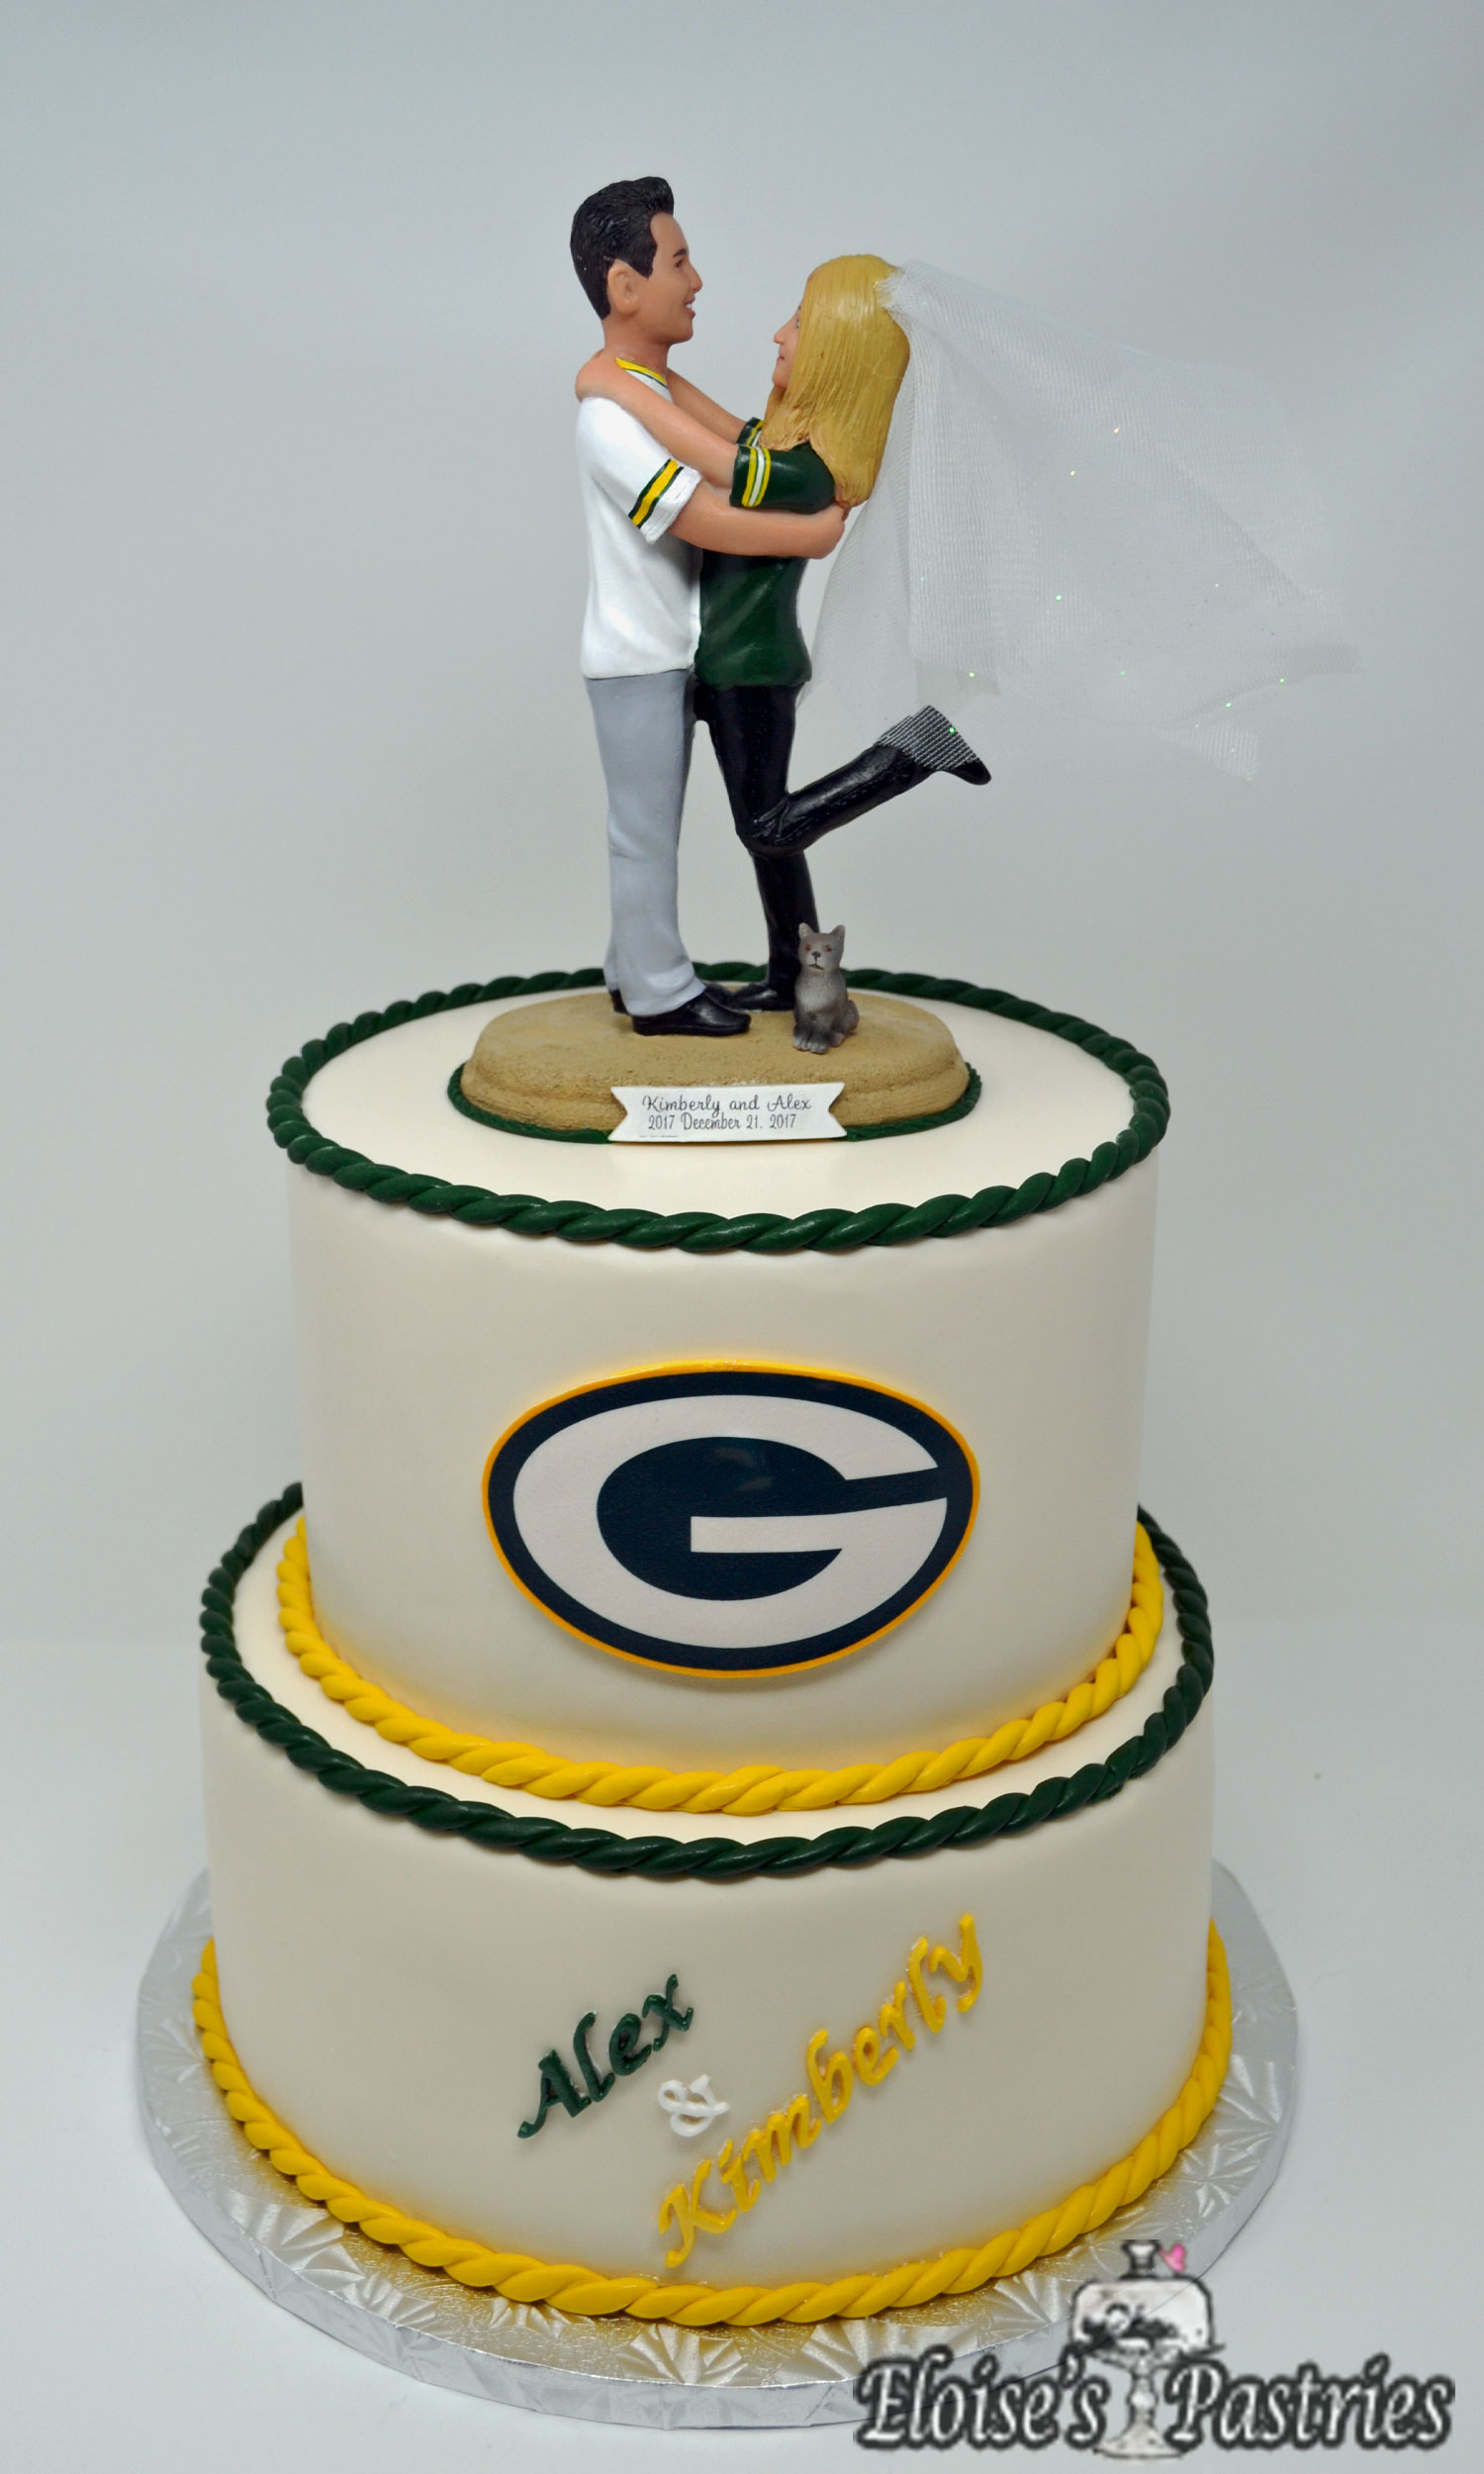 Groom's Cake - Team Theme